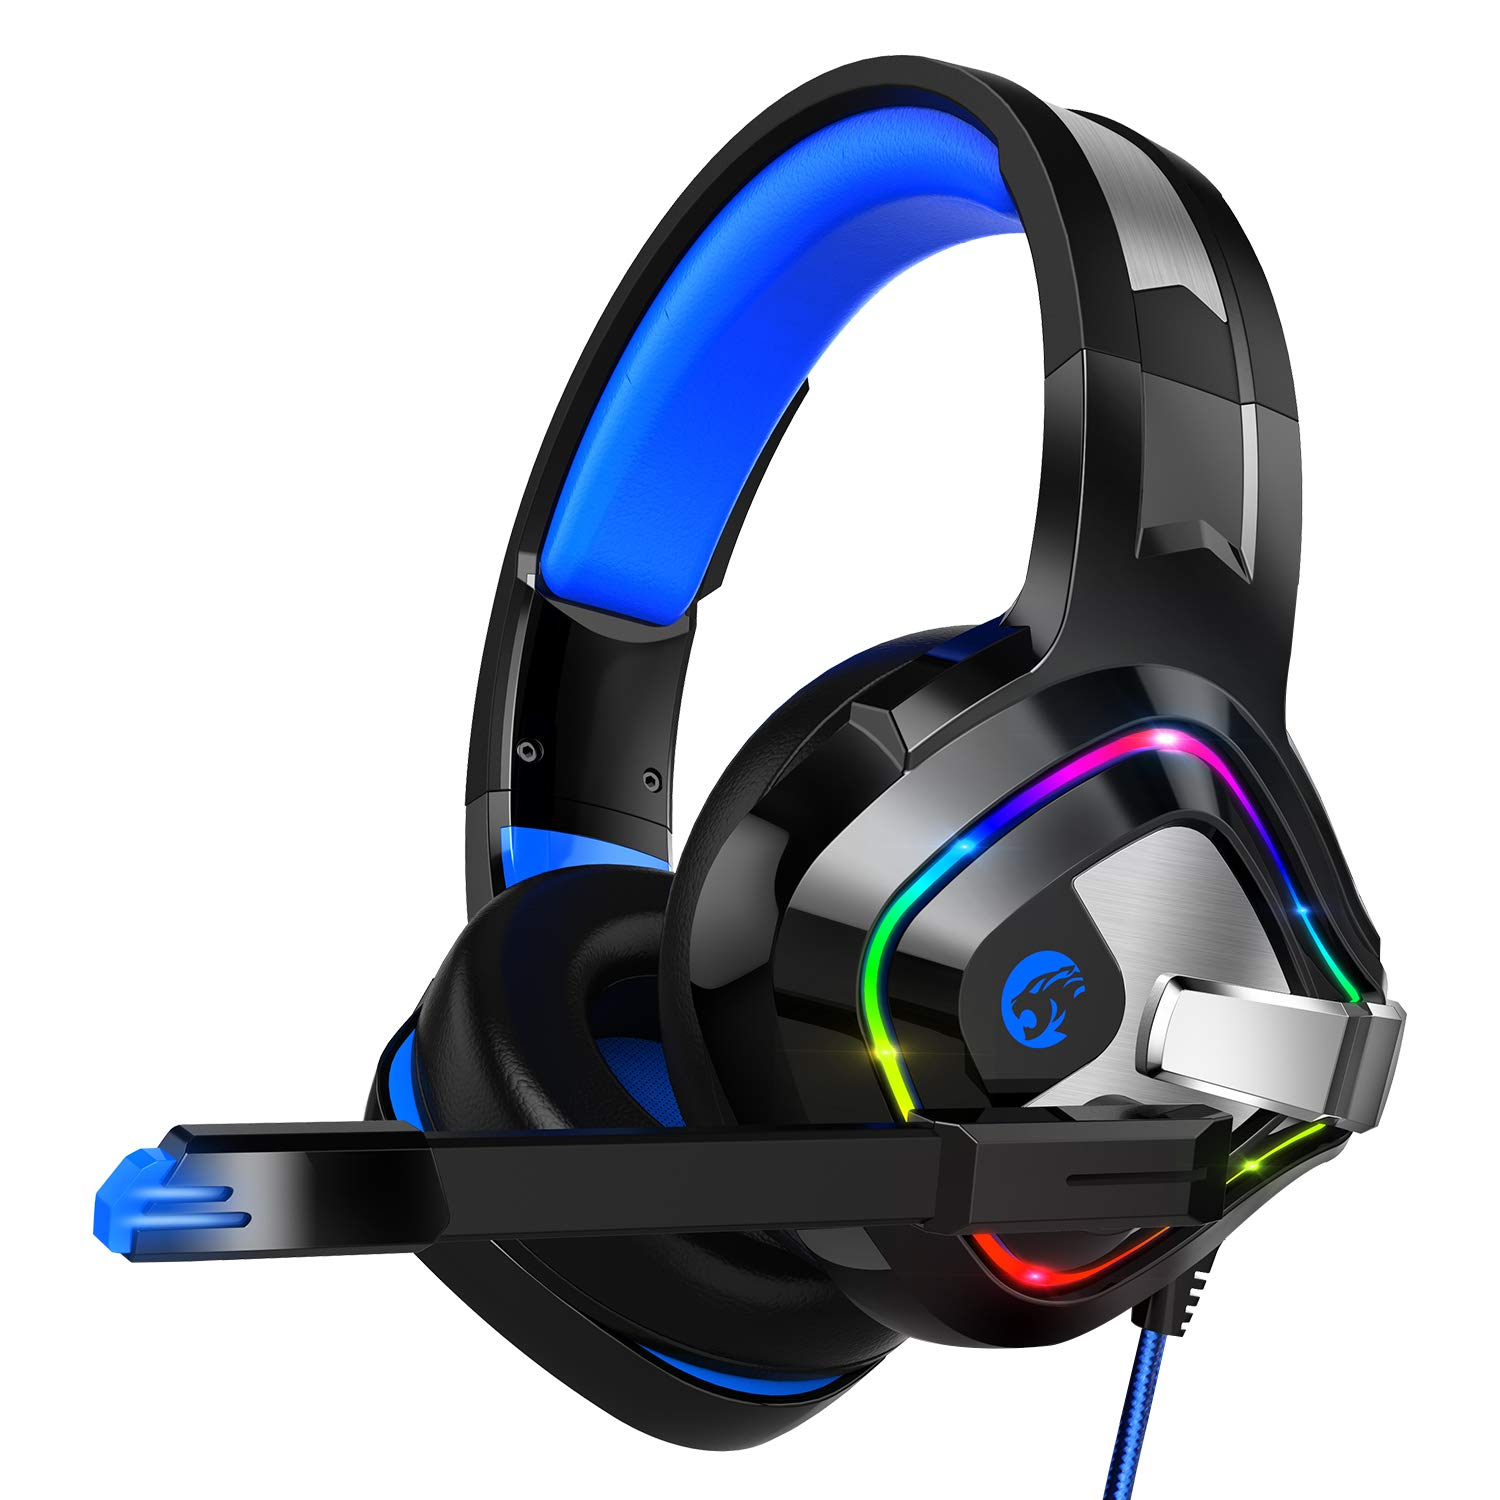 ZIUMIER Gaming Headset PS4 Headset, Xbox One Headset with Noise Canceling Mic RGB Light, PC Headset with Stereo Surround Sound, Over Ear Headphones for PC, PS4, Xbox One, Laptop